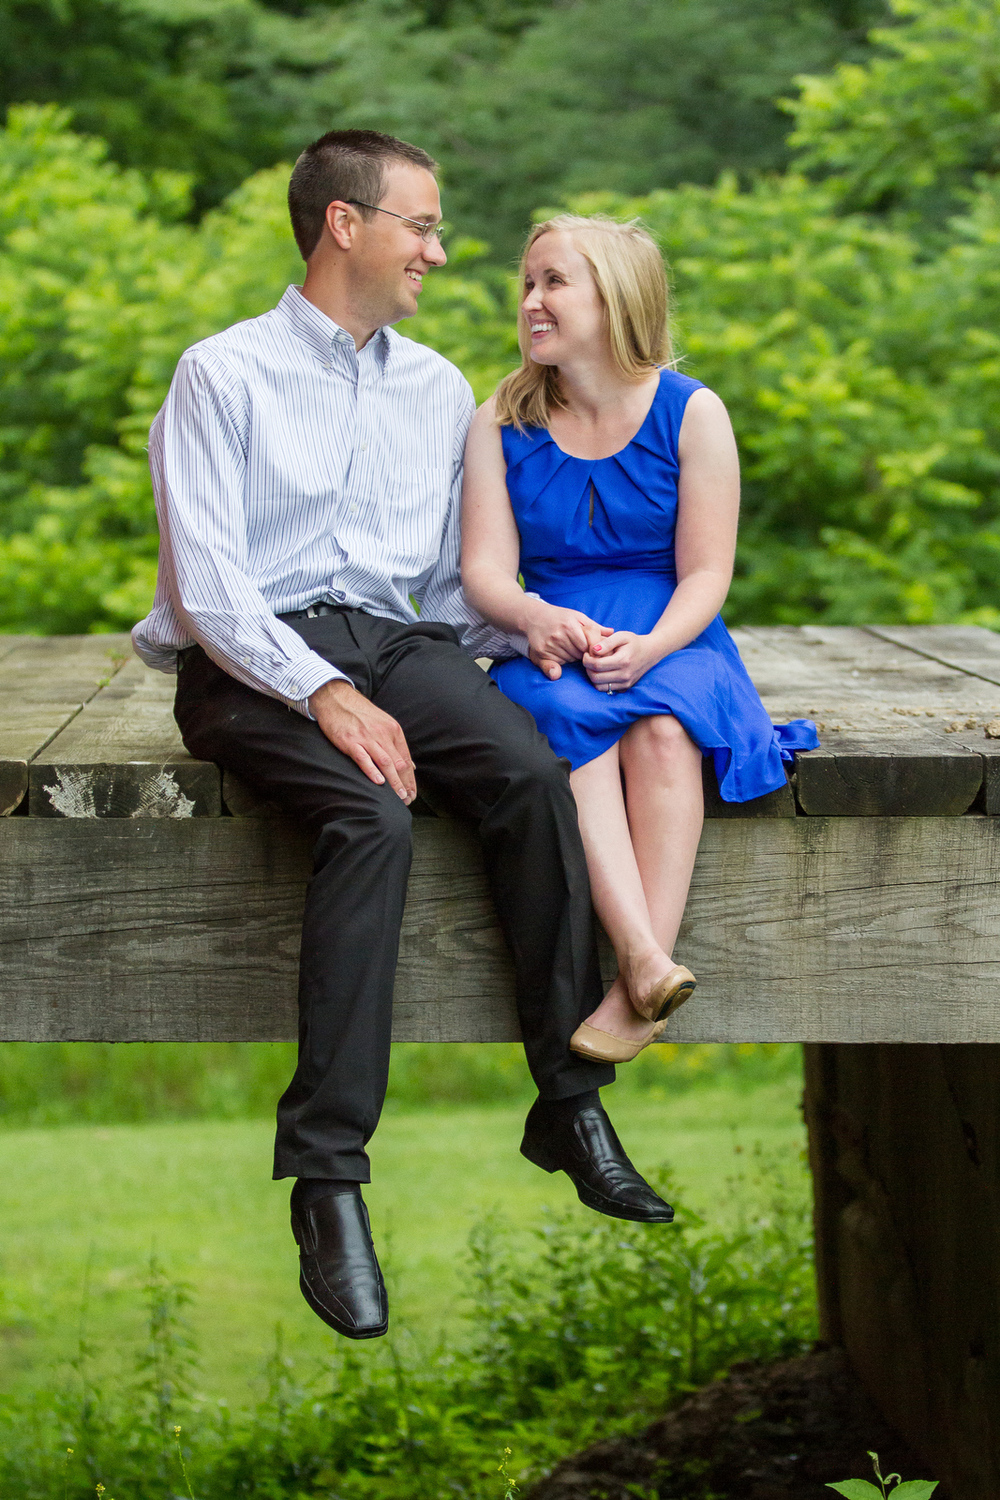 columbus-ohio-engagement-session-photographer-muschlitz-photography2